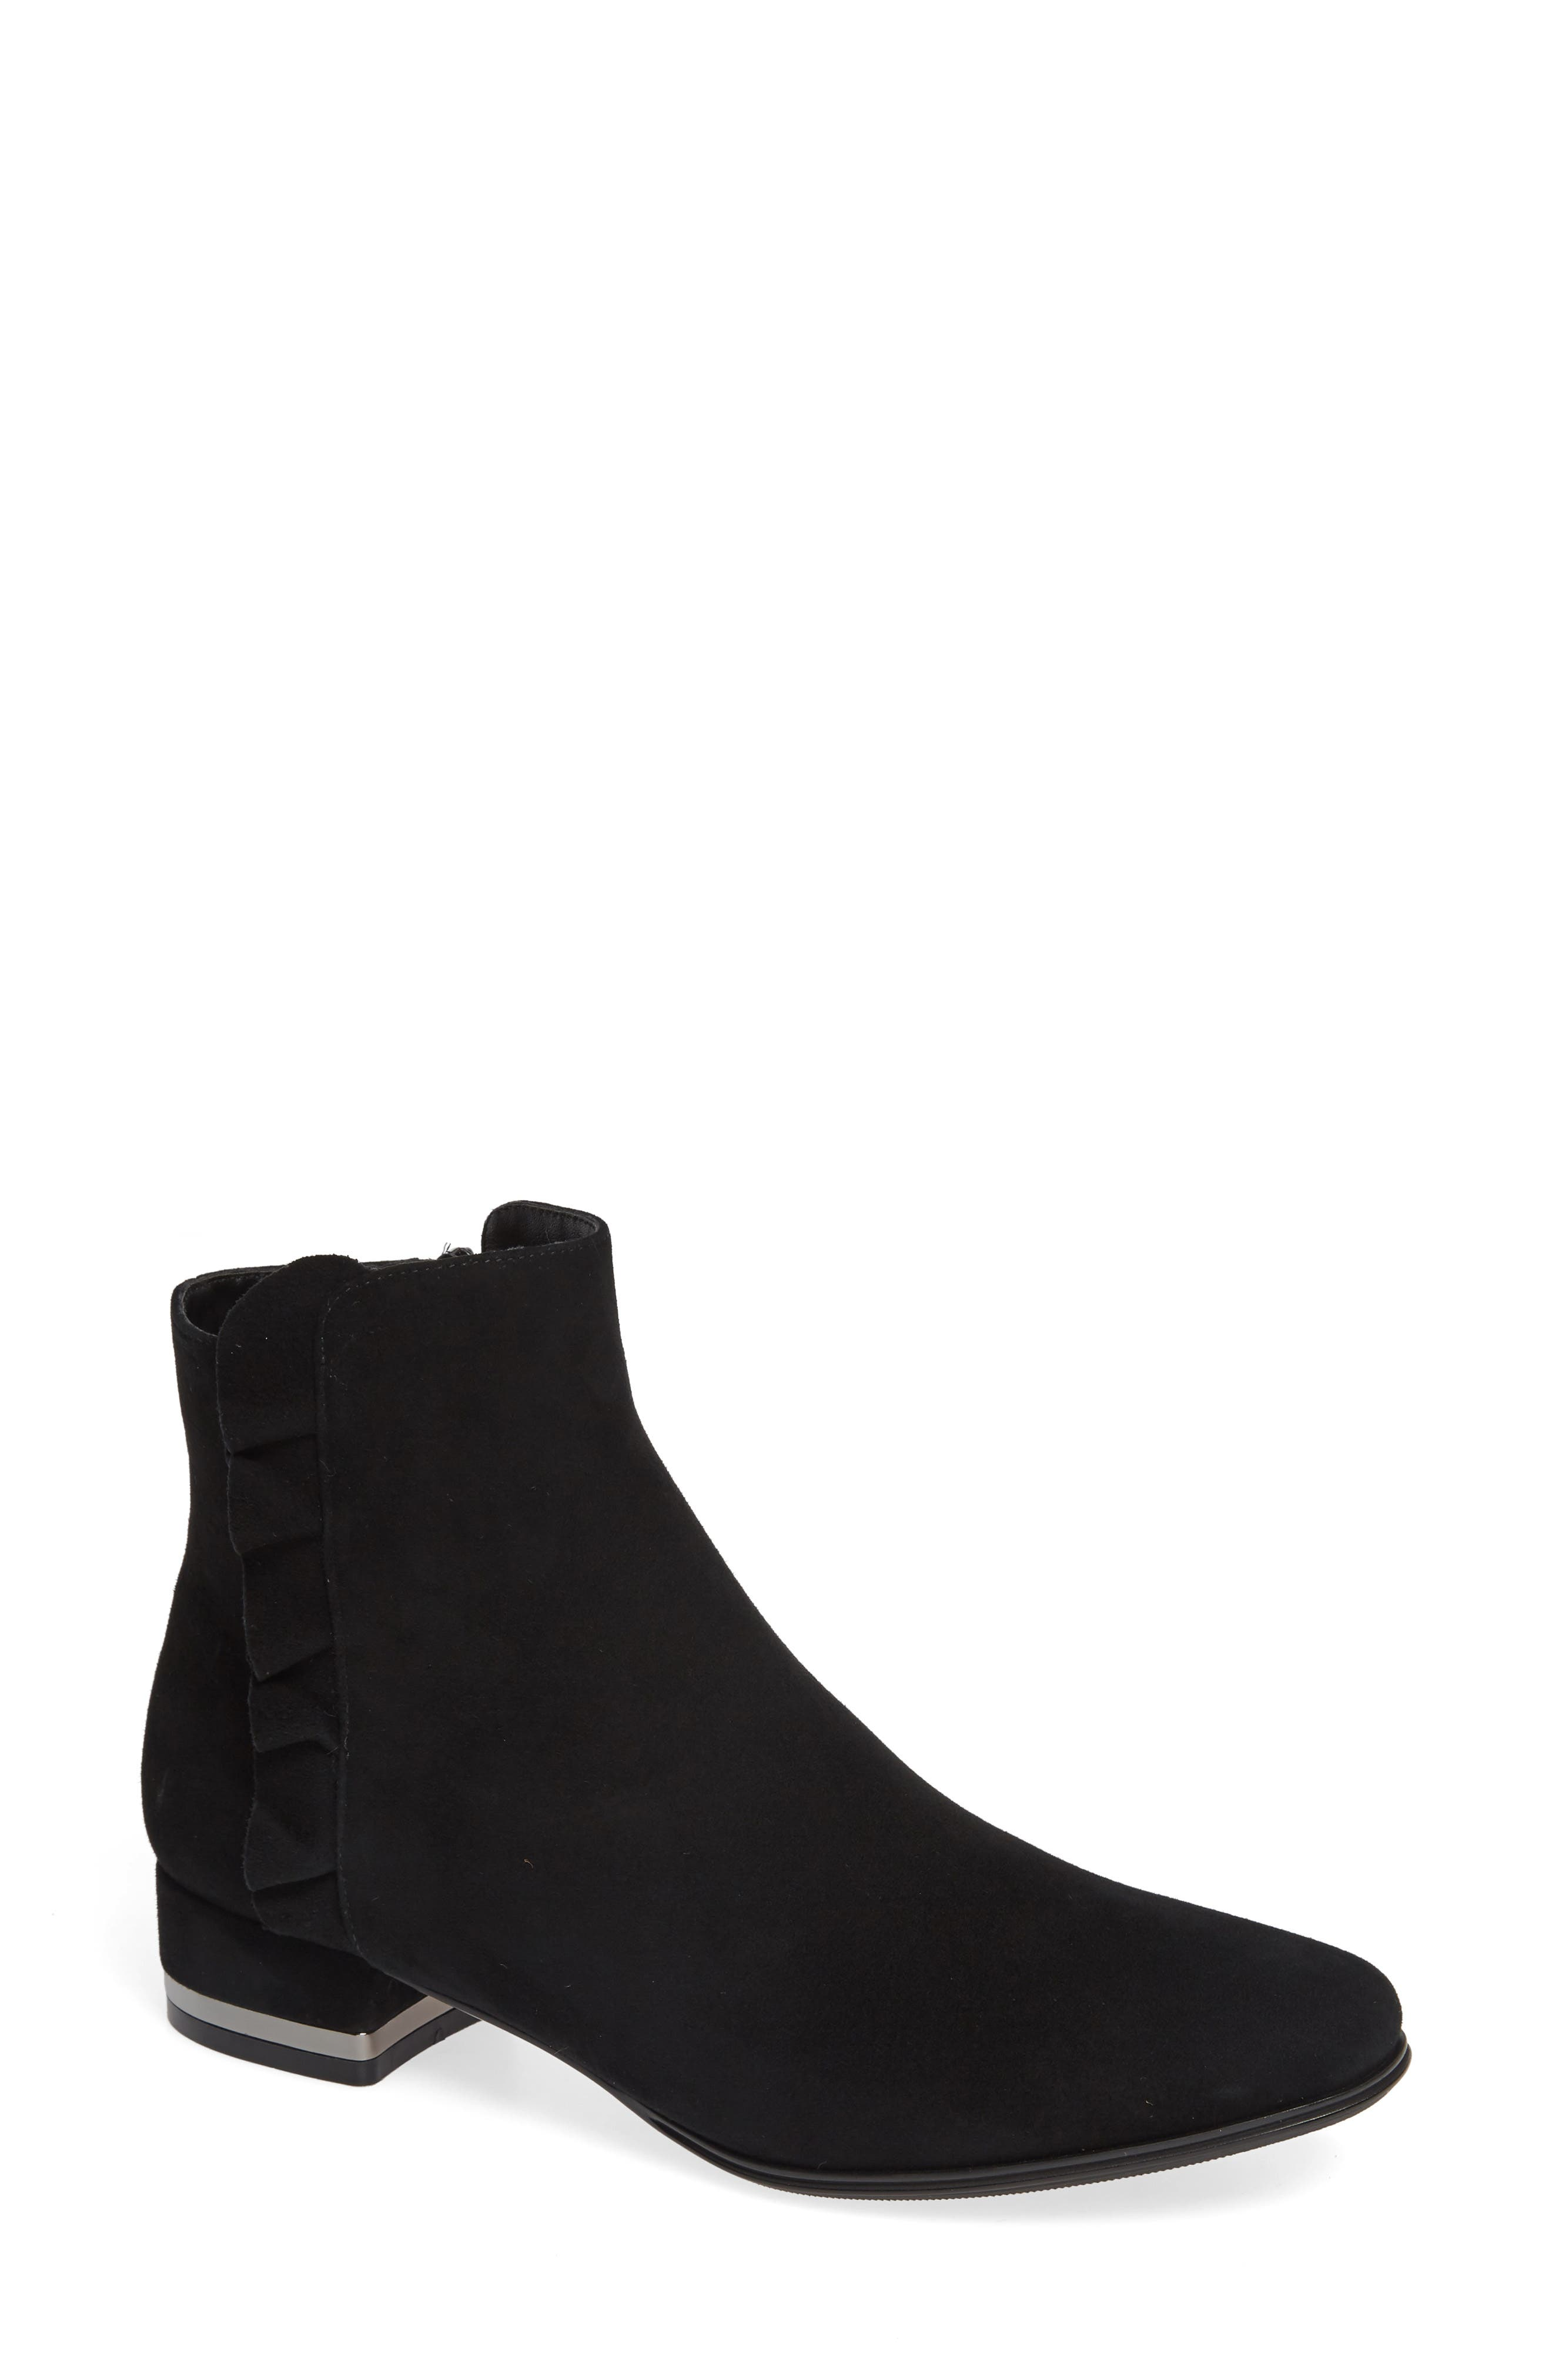 Amoke Bootie,                         Main,                         color, BLACK SUEDE